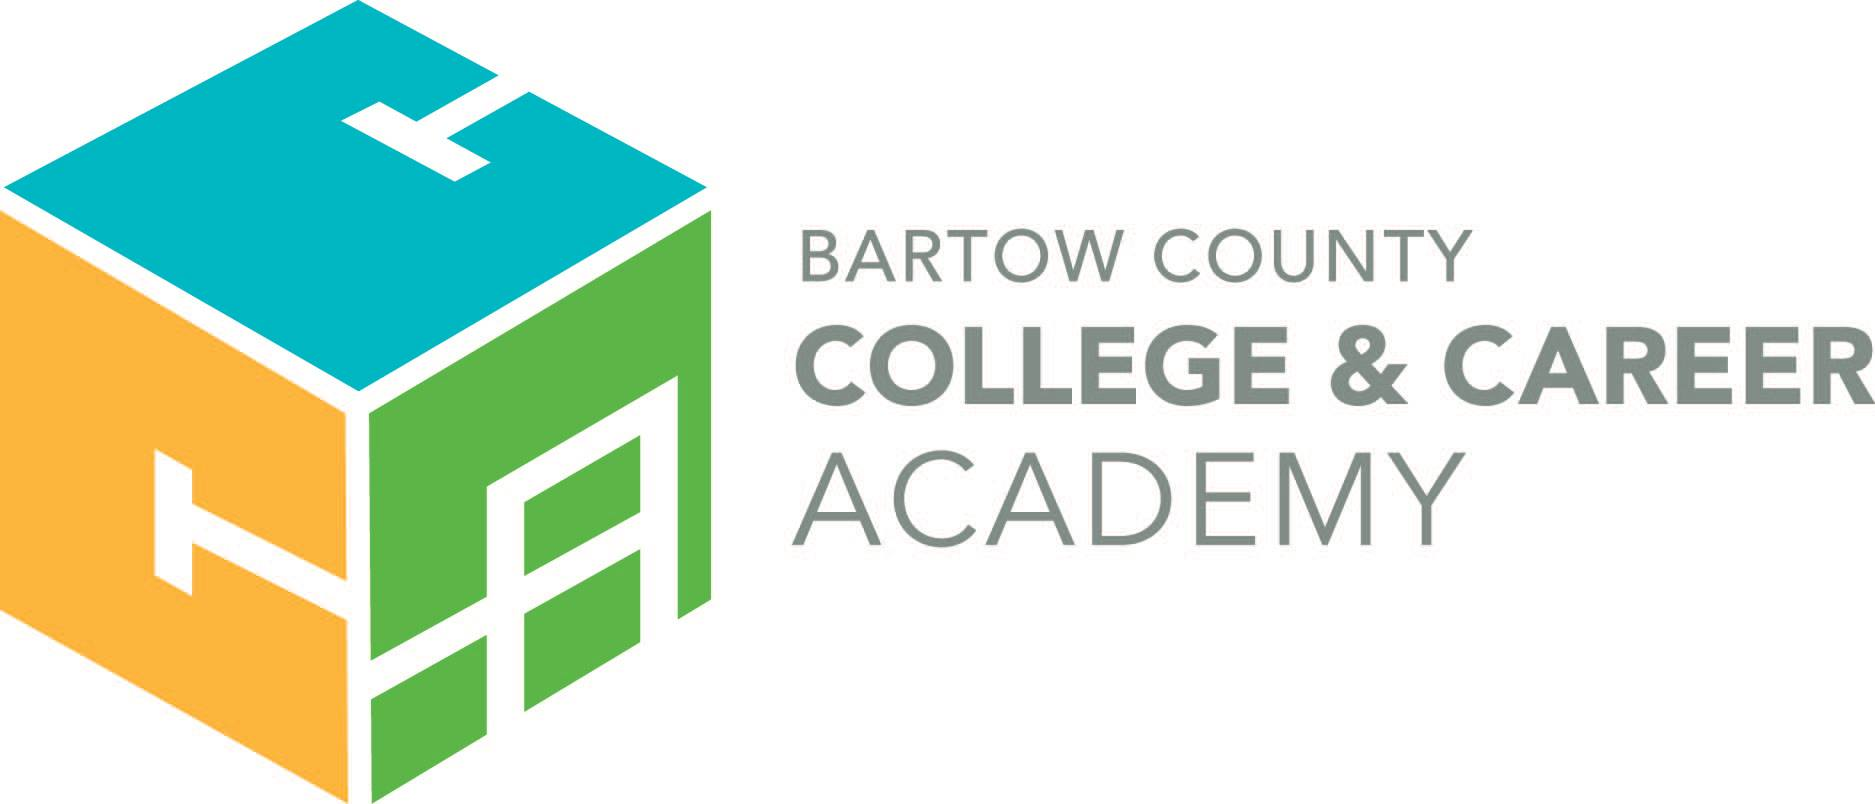 Bartow County College & Career Academy